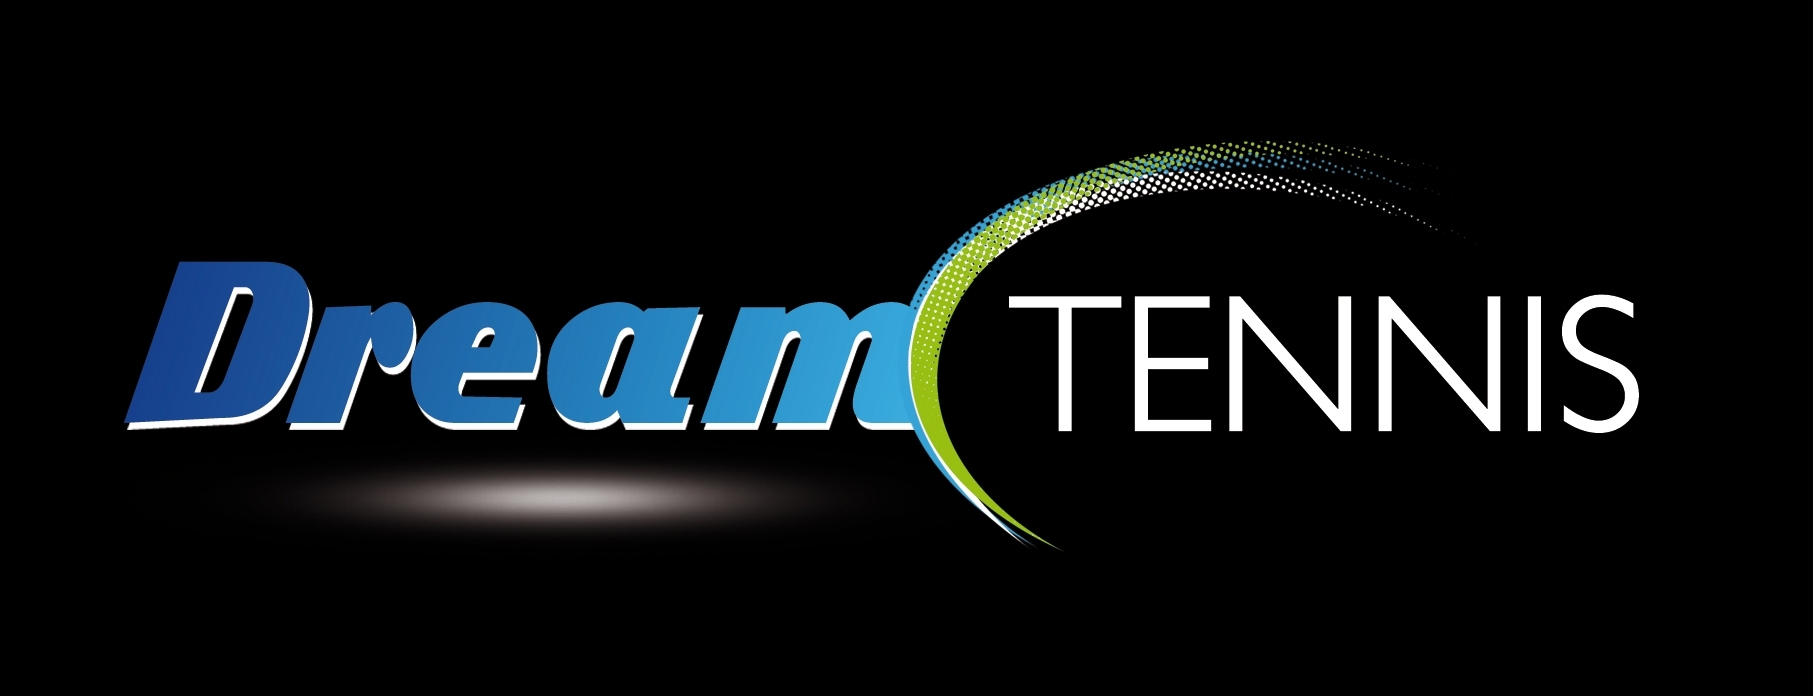 La boutique Dream Tennis - Dream Tennis